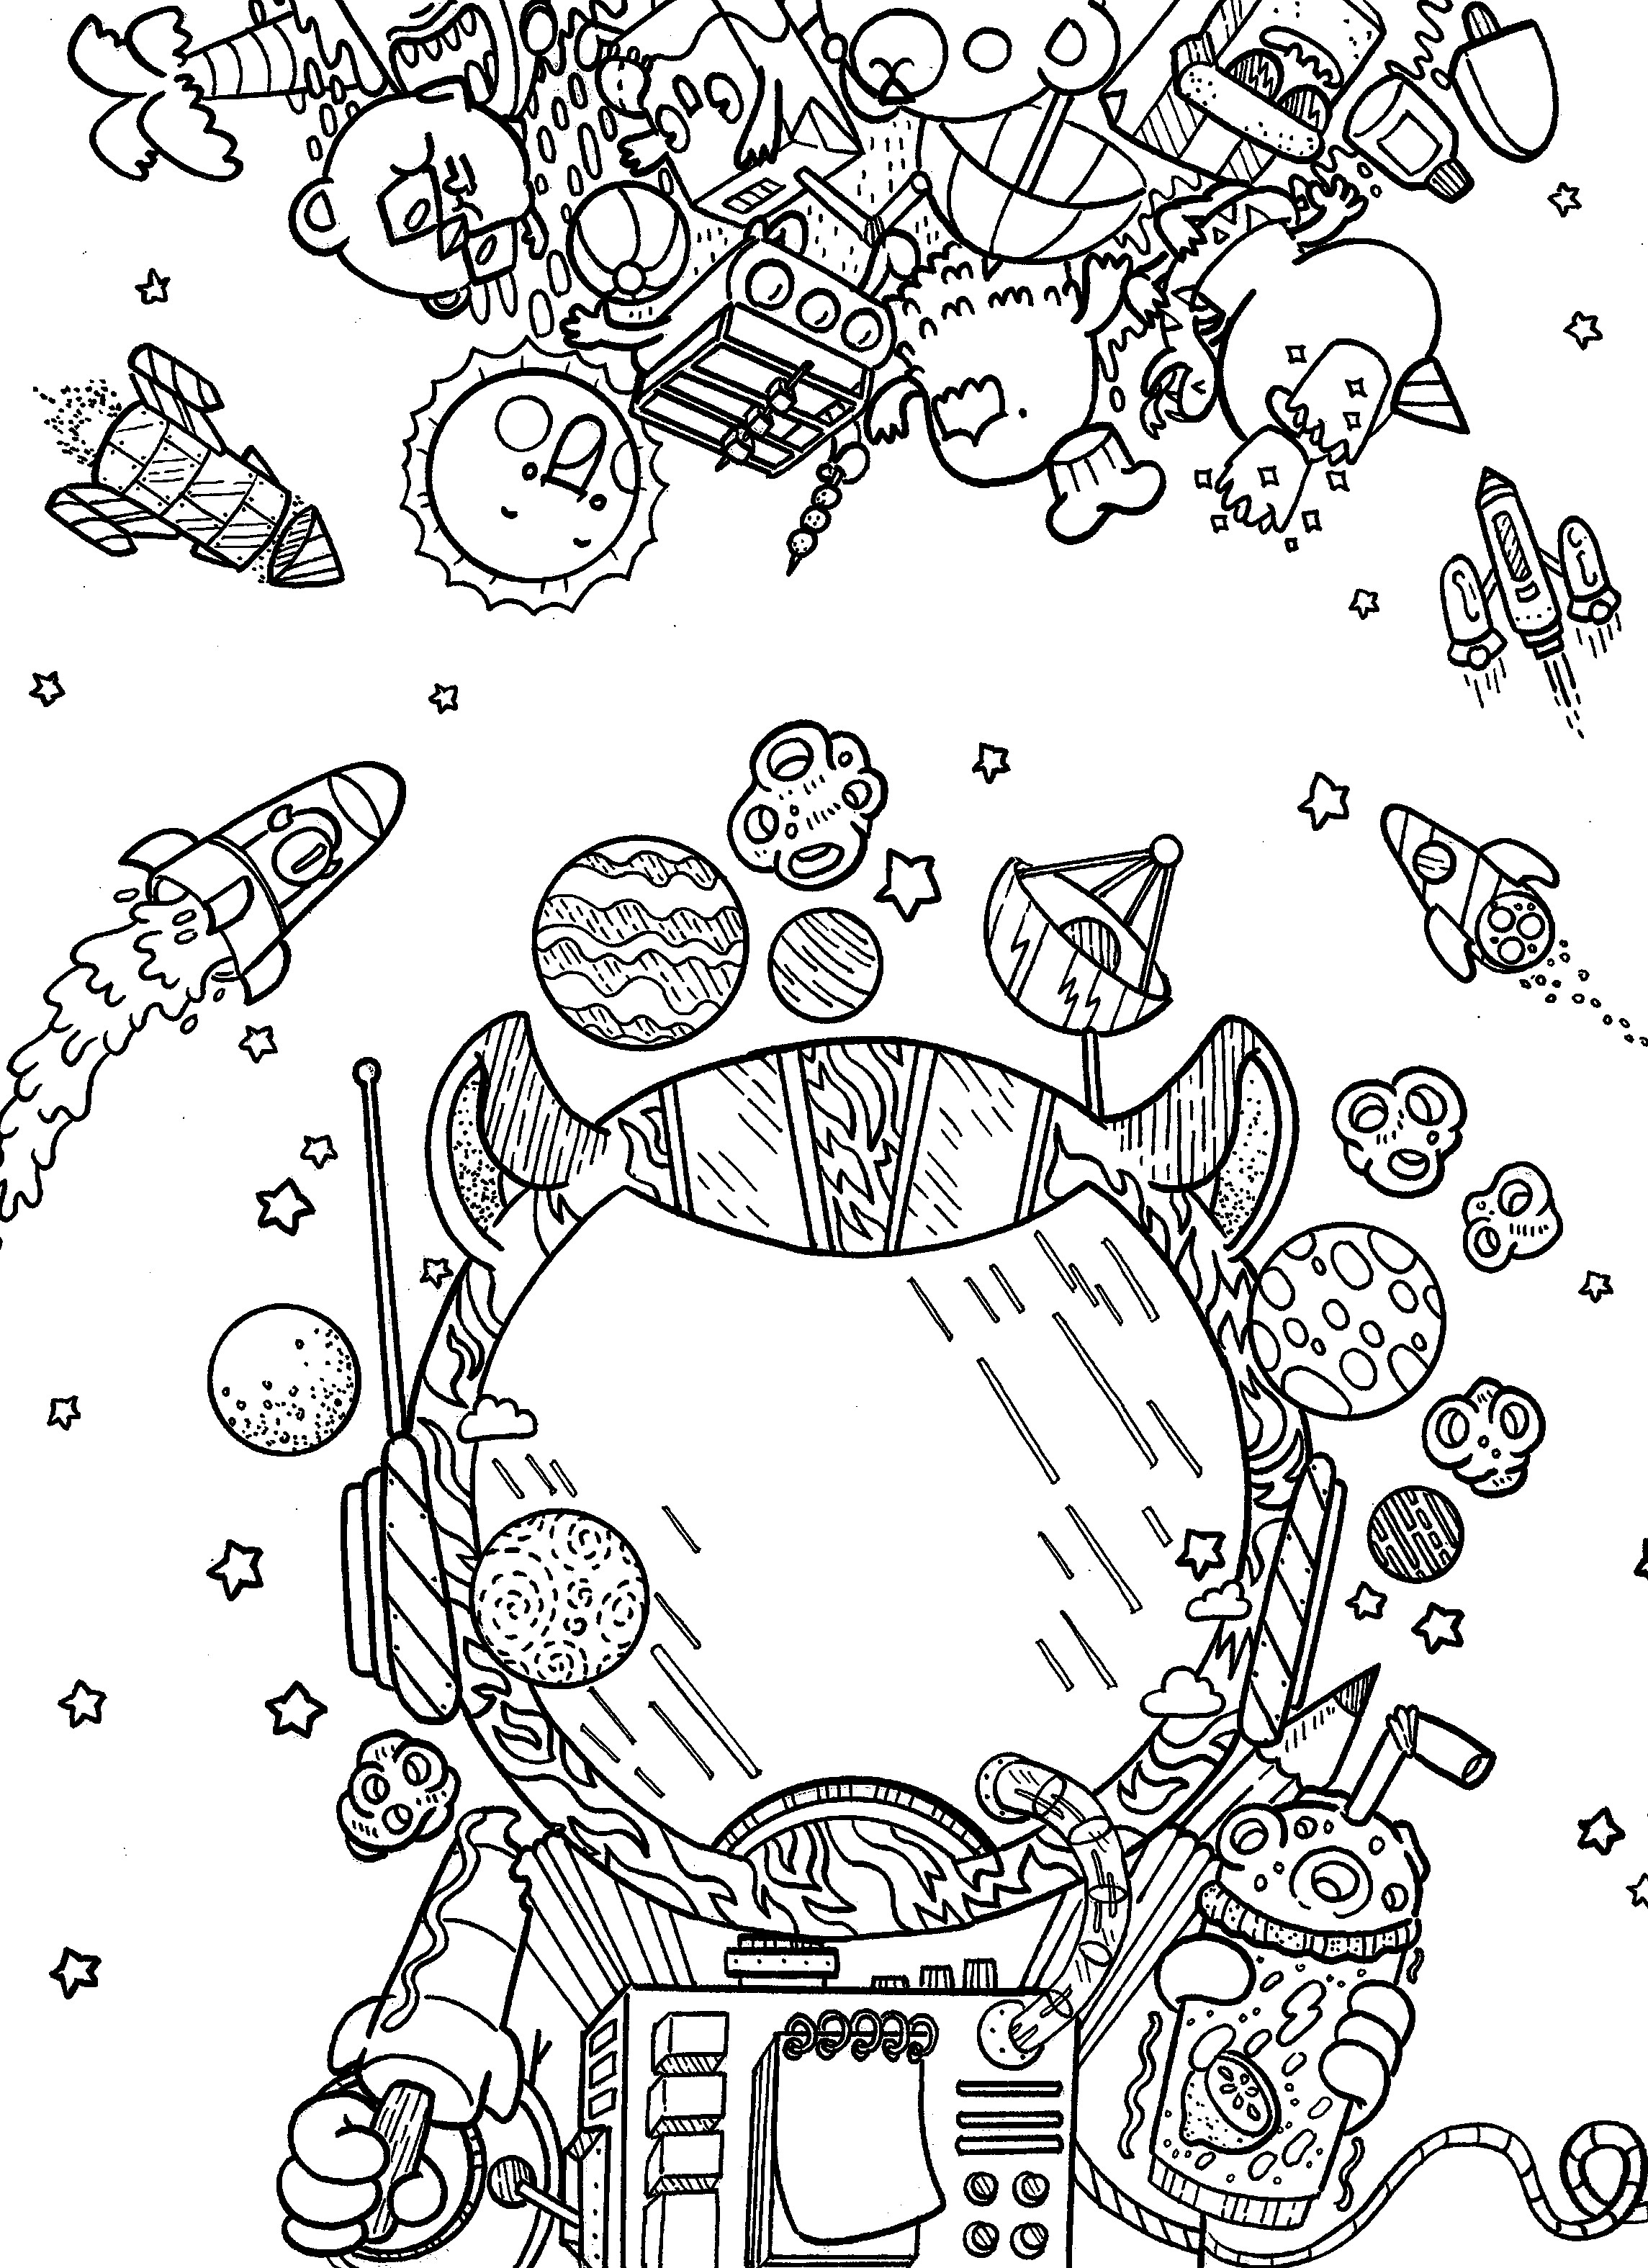 Outer Space Coloring Pages For Adults  Pin by irvin ranada on doodles in outer space coloring